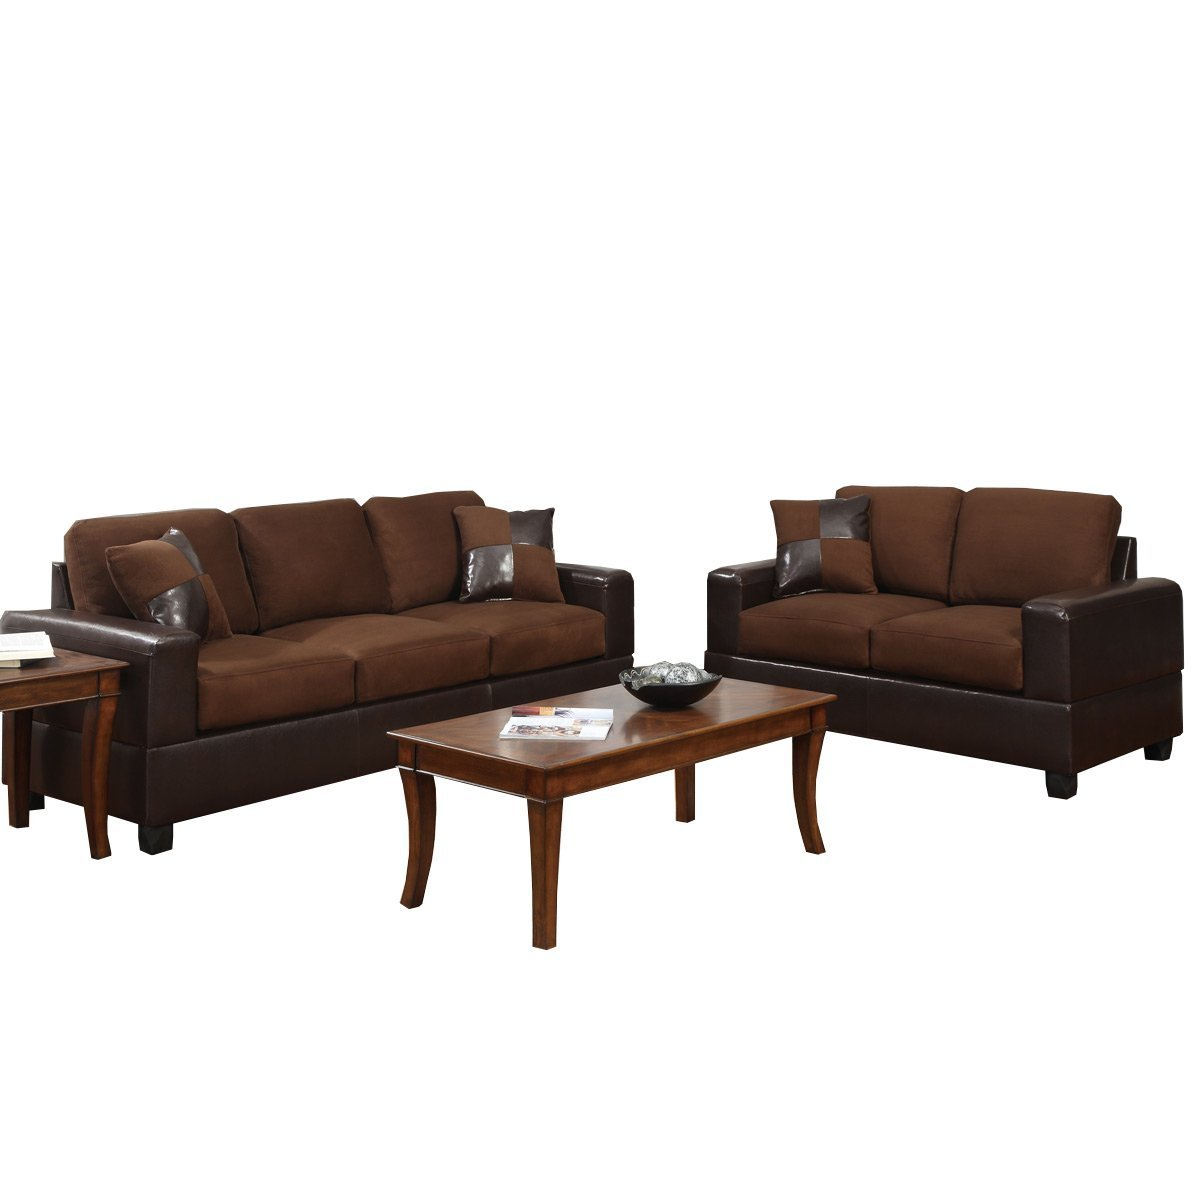 Admirable Bobkona Seattle Microfiber Sofa And Loveseat 2 Piece Set In Chocolate Color Forskolin Free Trial Chair Design Images Forskolin Free Trialorg